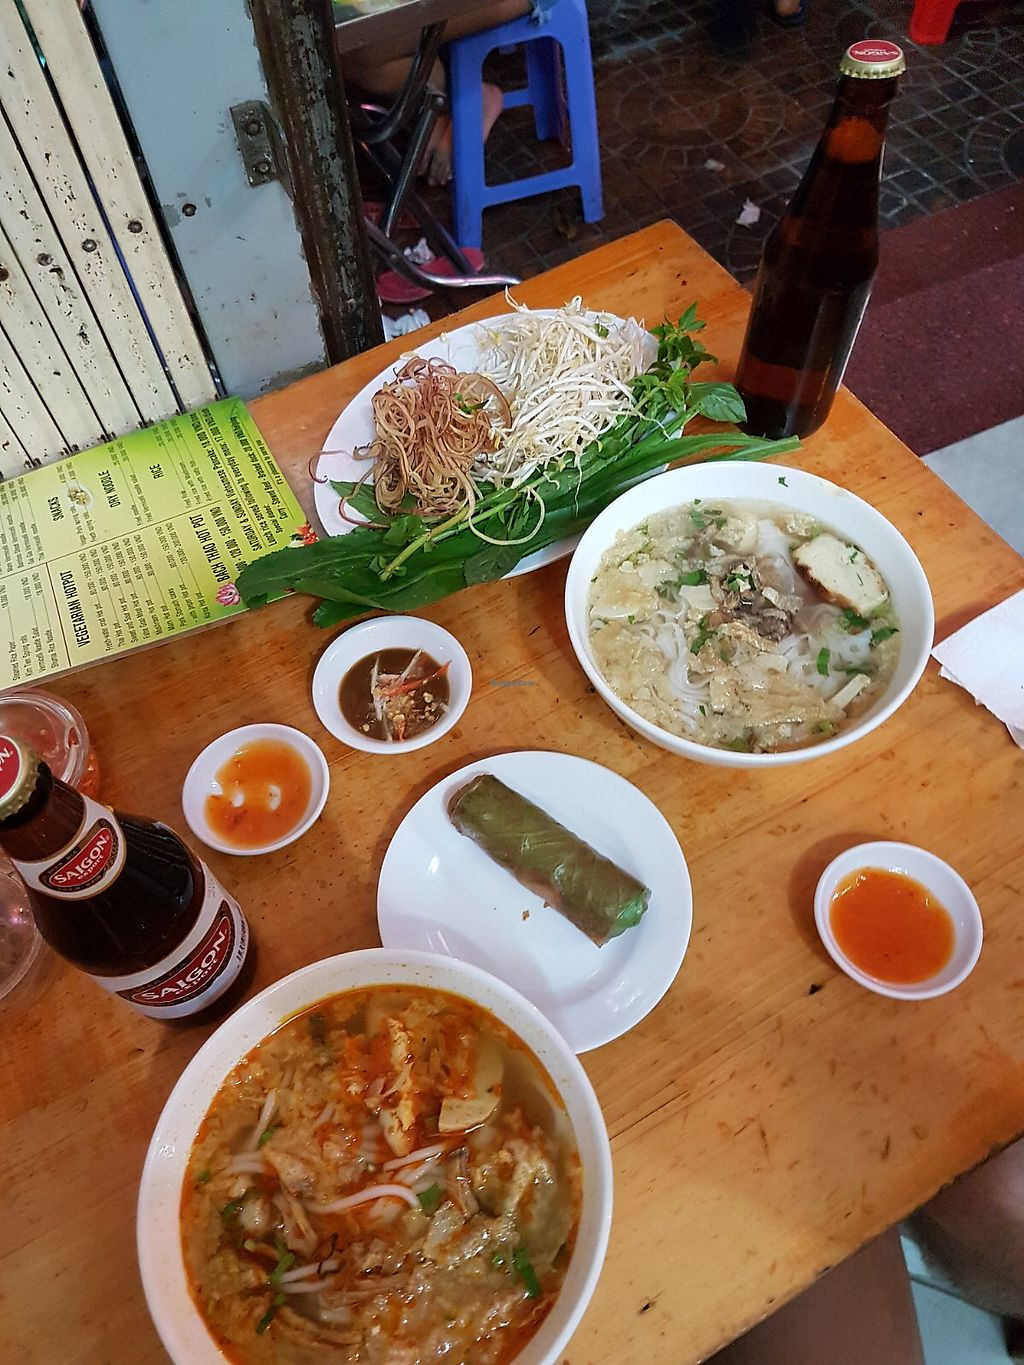 """Photo of Bach Thao  by <a href=""""/members/profile/SarahSofie"""">SarahSofie</a> <br/>Pho, beef noodle soup and a springroll <br/> January 18, 2018  - <a href='/contact/abuse/image/67891/348028'>Report</a>"""